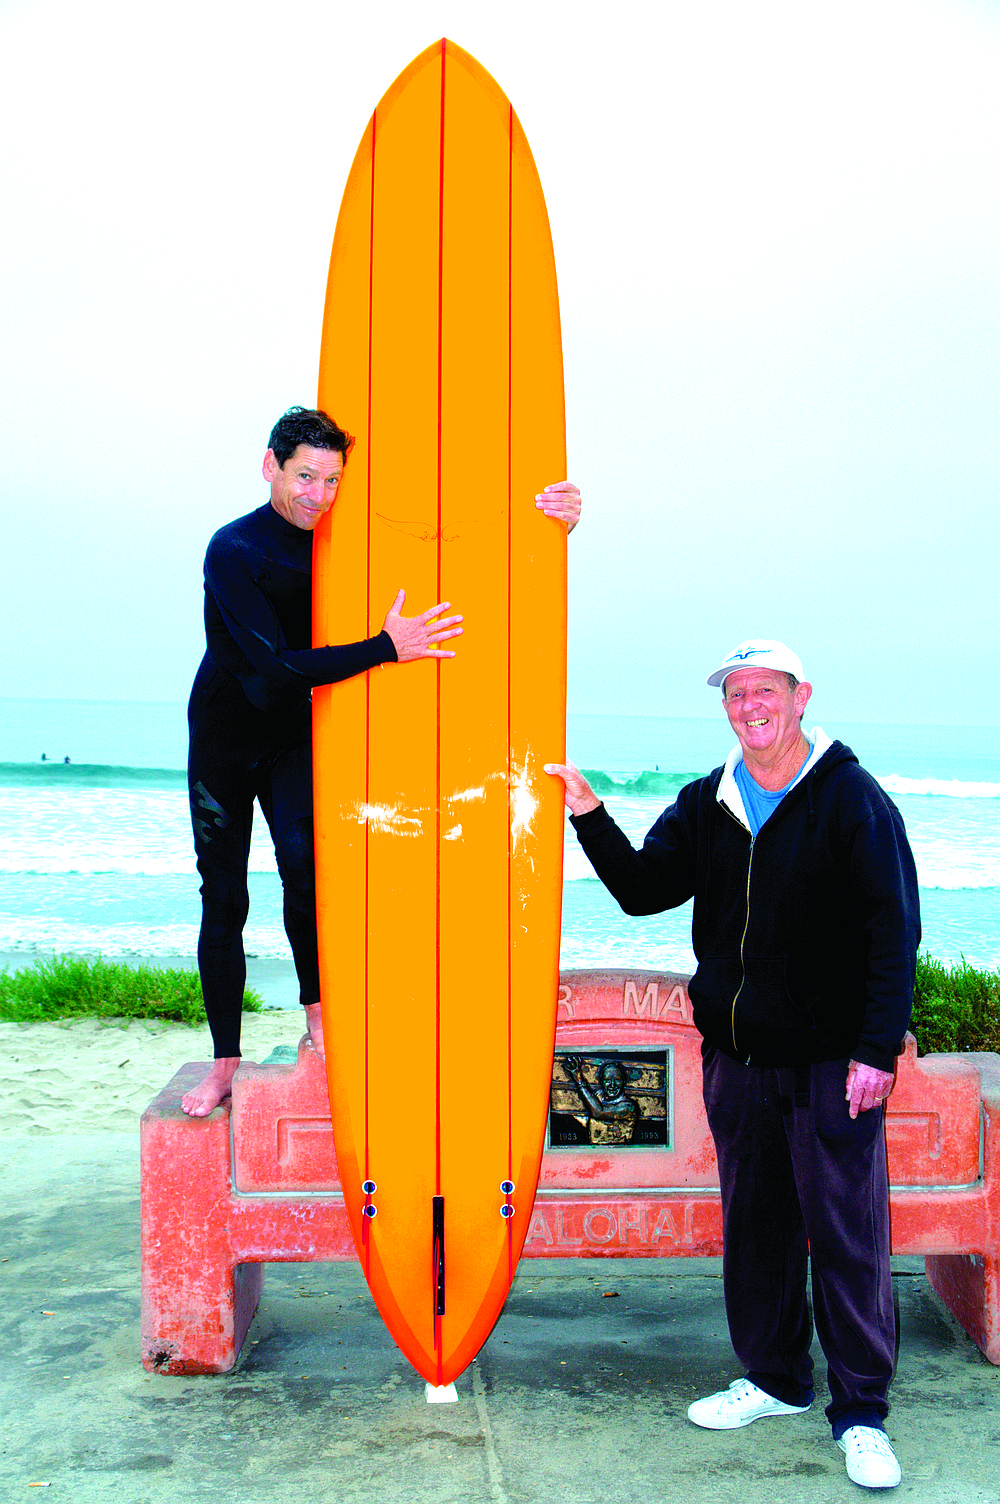 Goltz (author) and Frye with Goltz's new board. One of the most important things about surfing is looking cool. By now, you've probably picked up that surfing on a Skip Frye–shaped surfboard at Tourmaline is pretty cool.